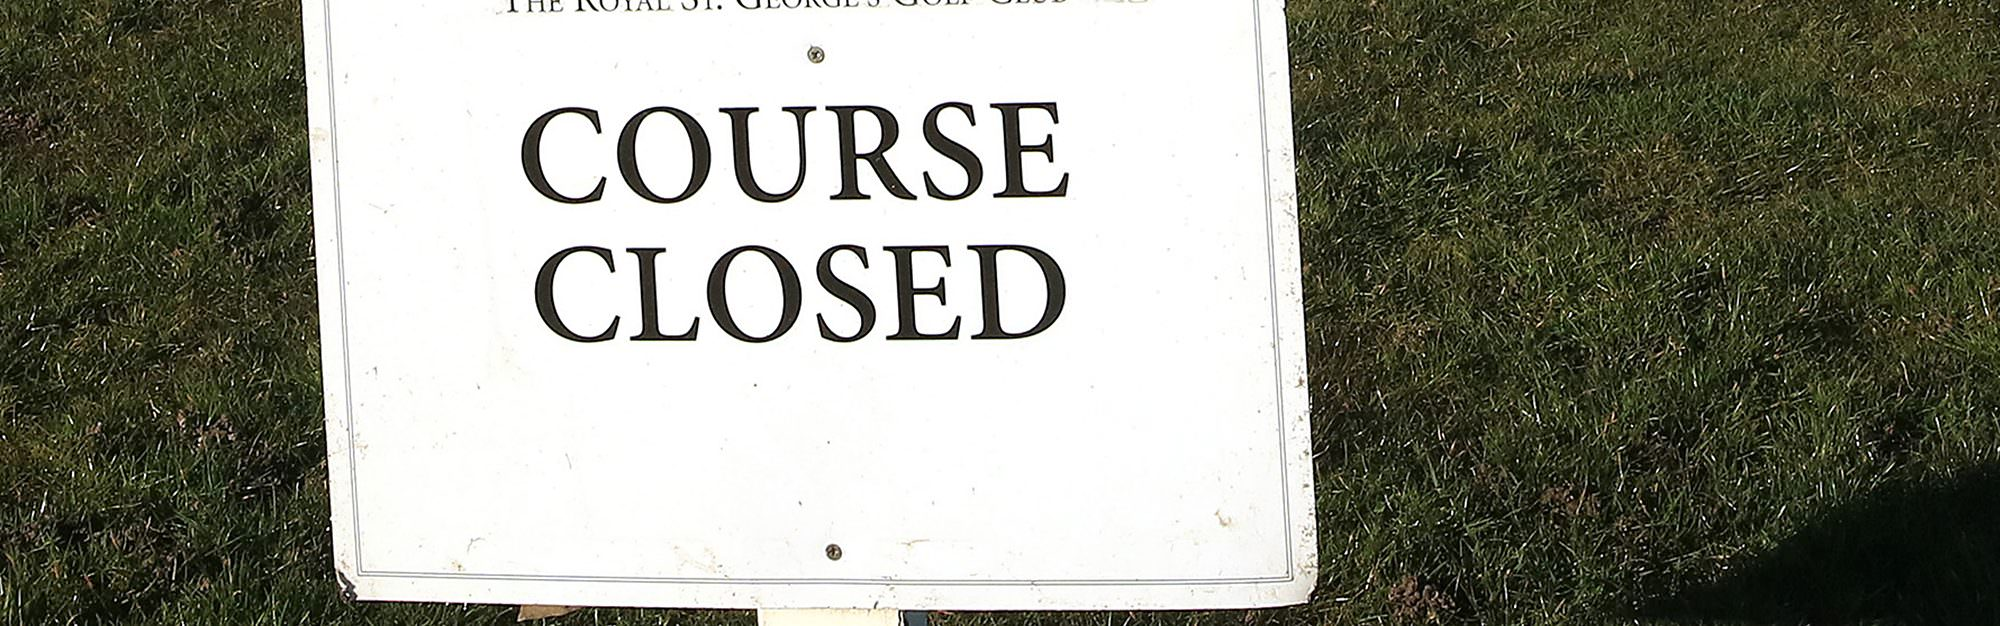 Here we go again! Golf courses in England told to close for third lockdown